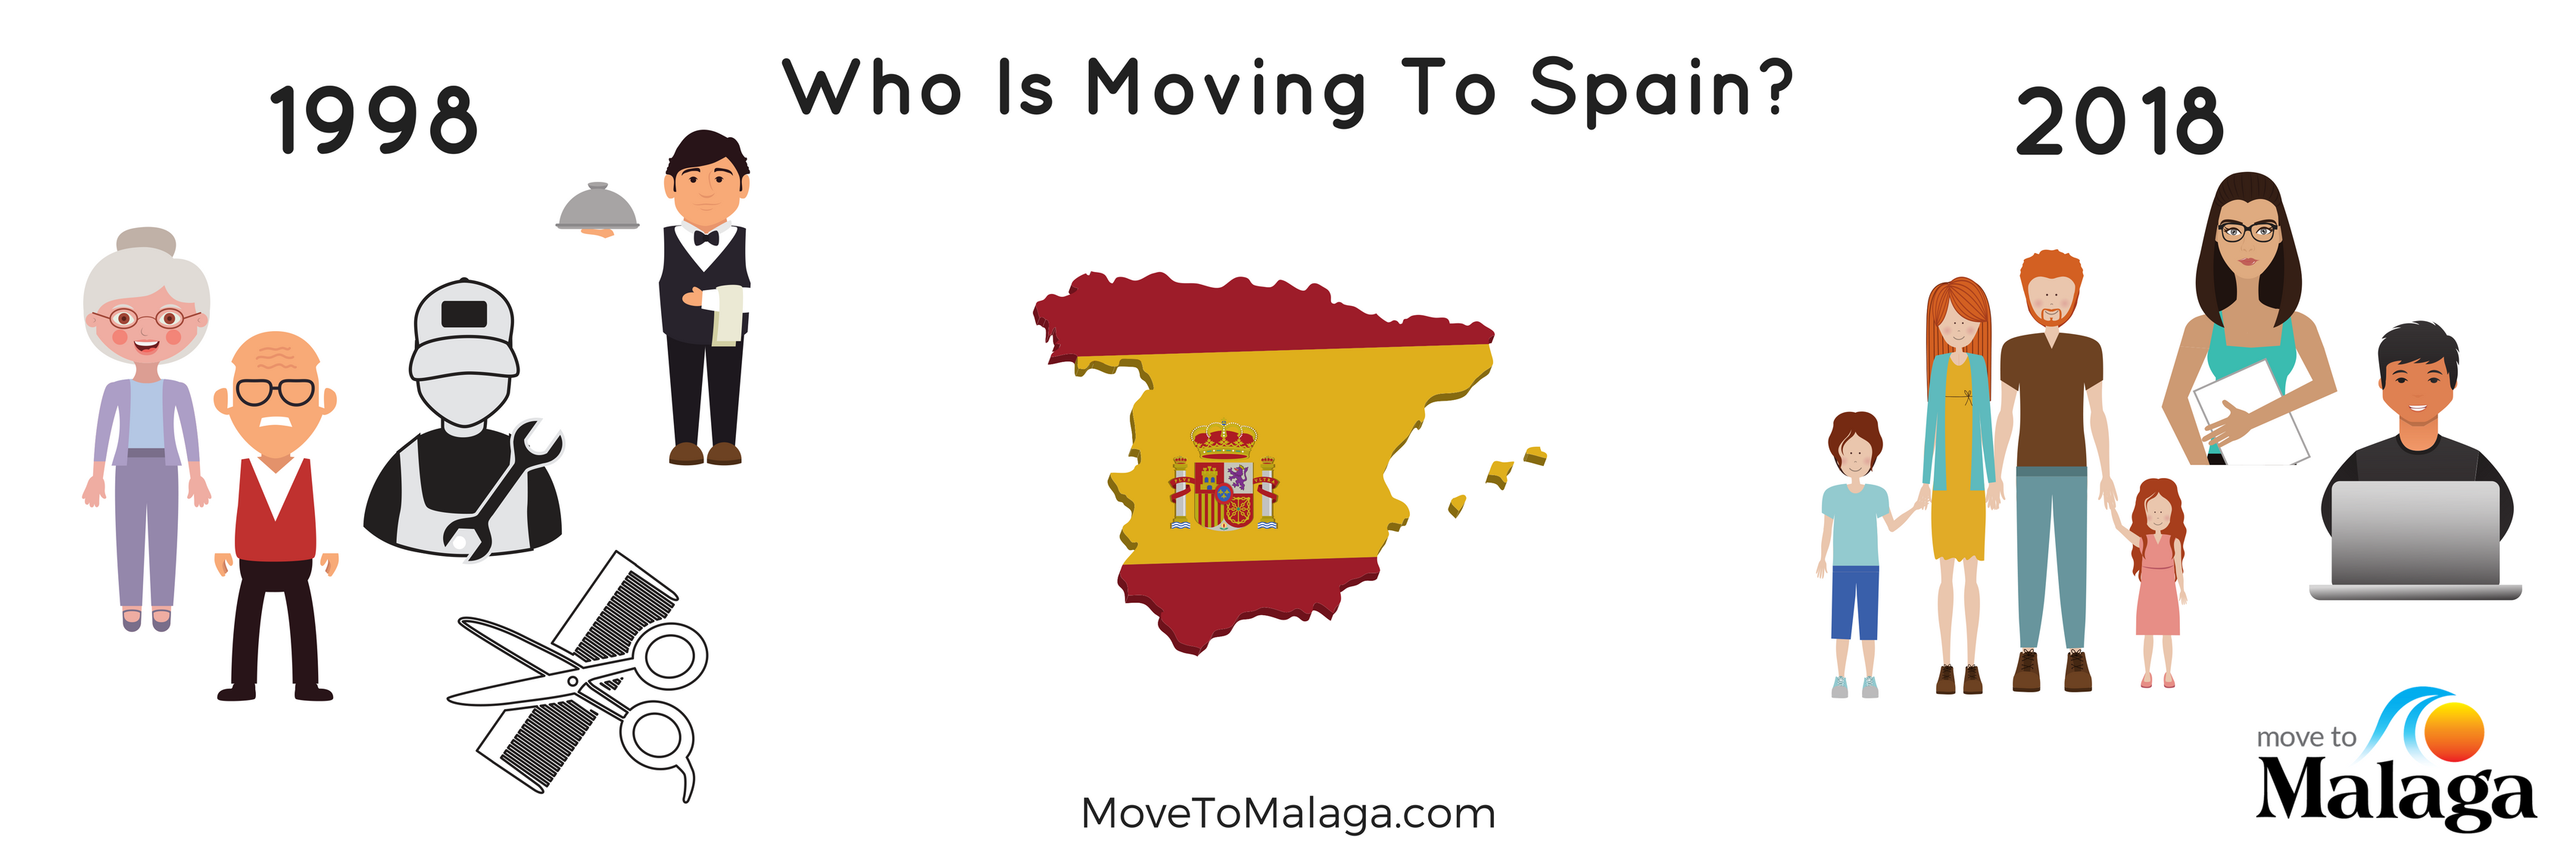 Who Is Moving To Spain in 2018? Bring On Location Independent Living!